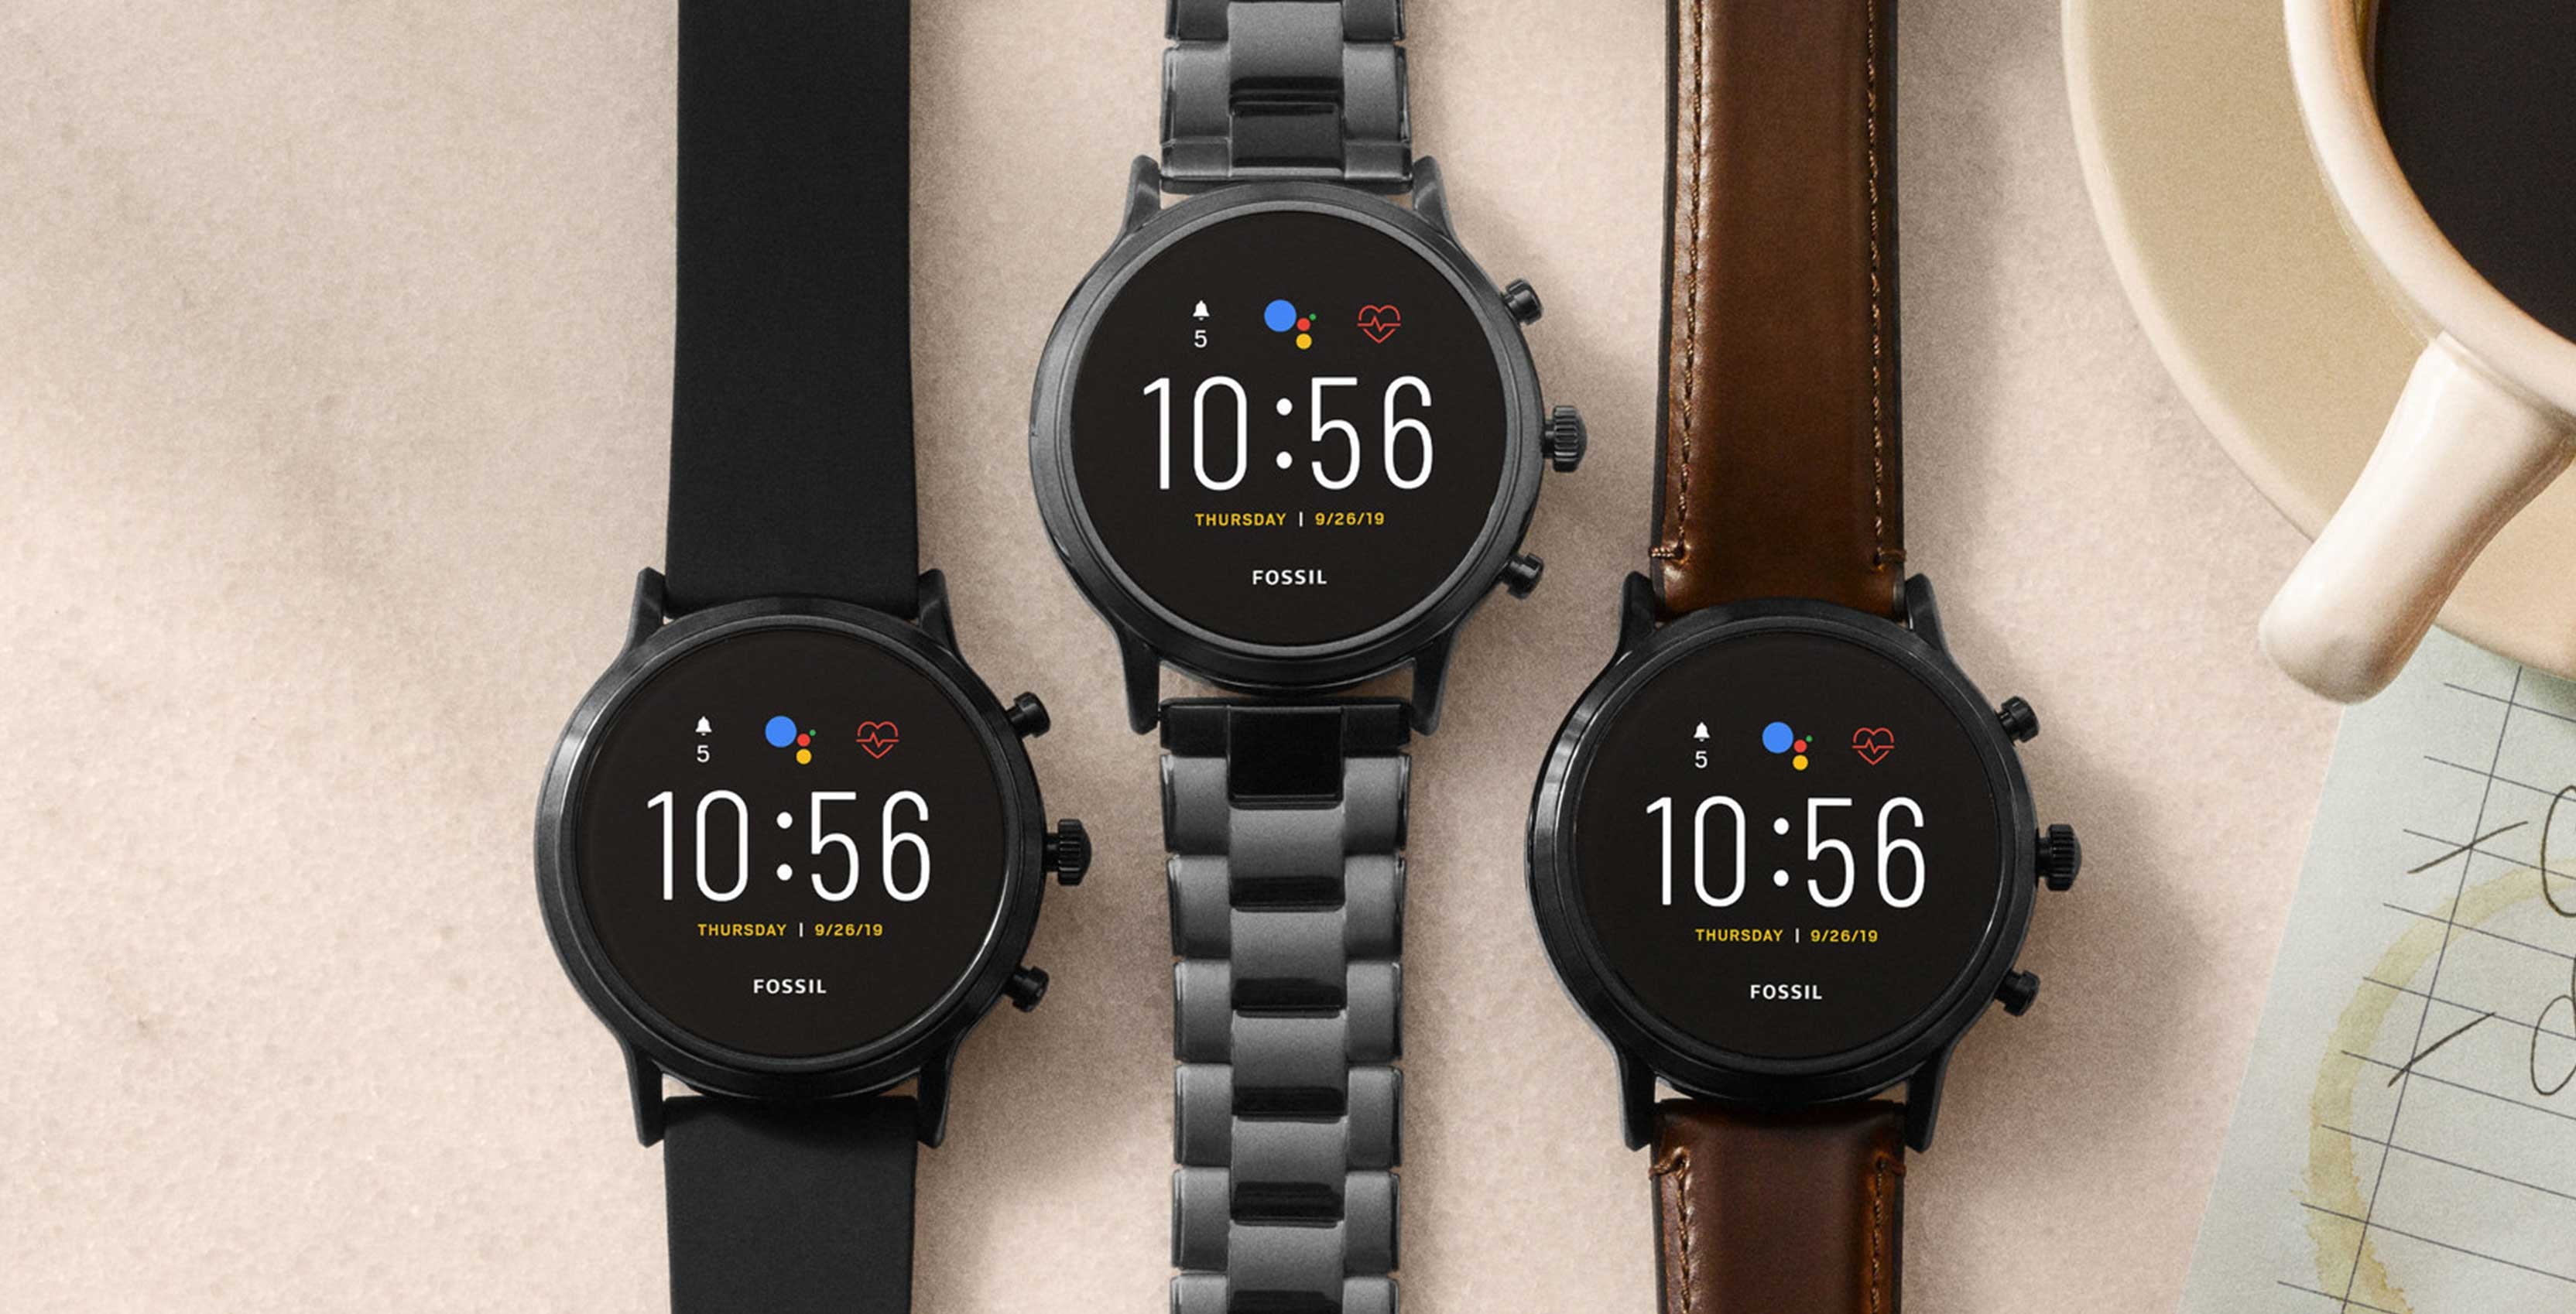 Fossil's new Wear OS watches look to raise the Android